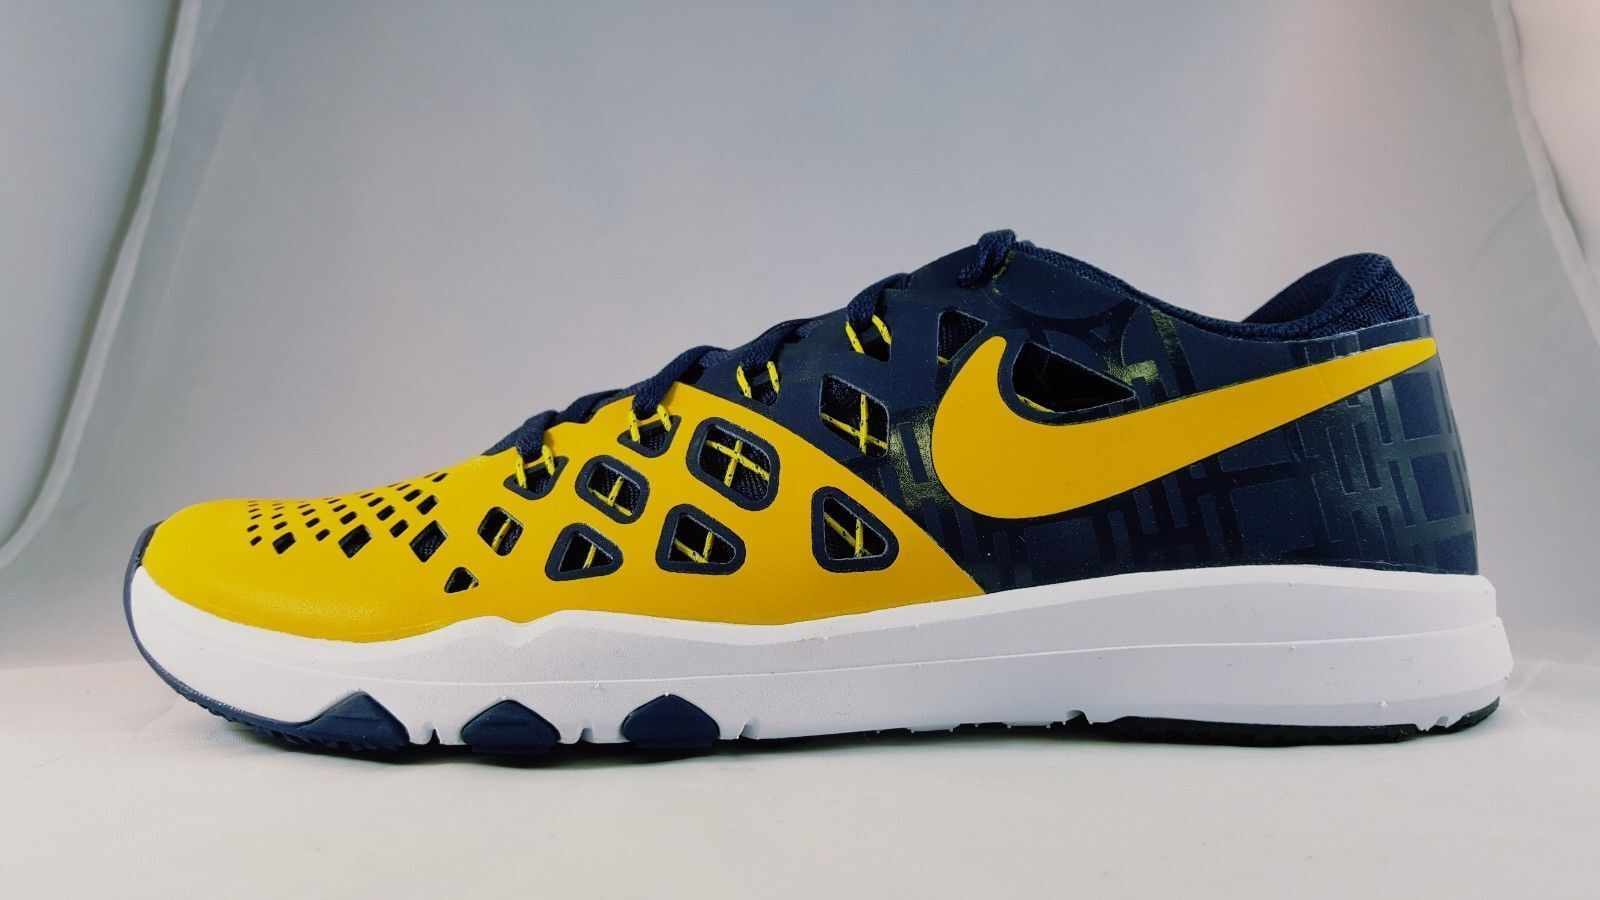 Nike Train Speed 4 AMP Michigan 844102 Wolverines Men's Training Shoes 844102 Michigan 417 Sz 9 87f766